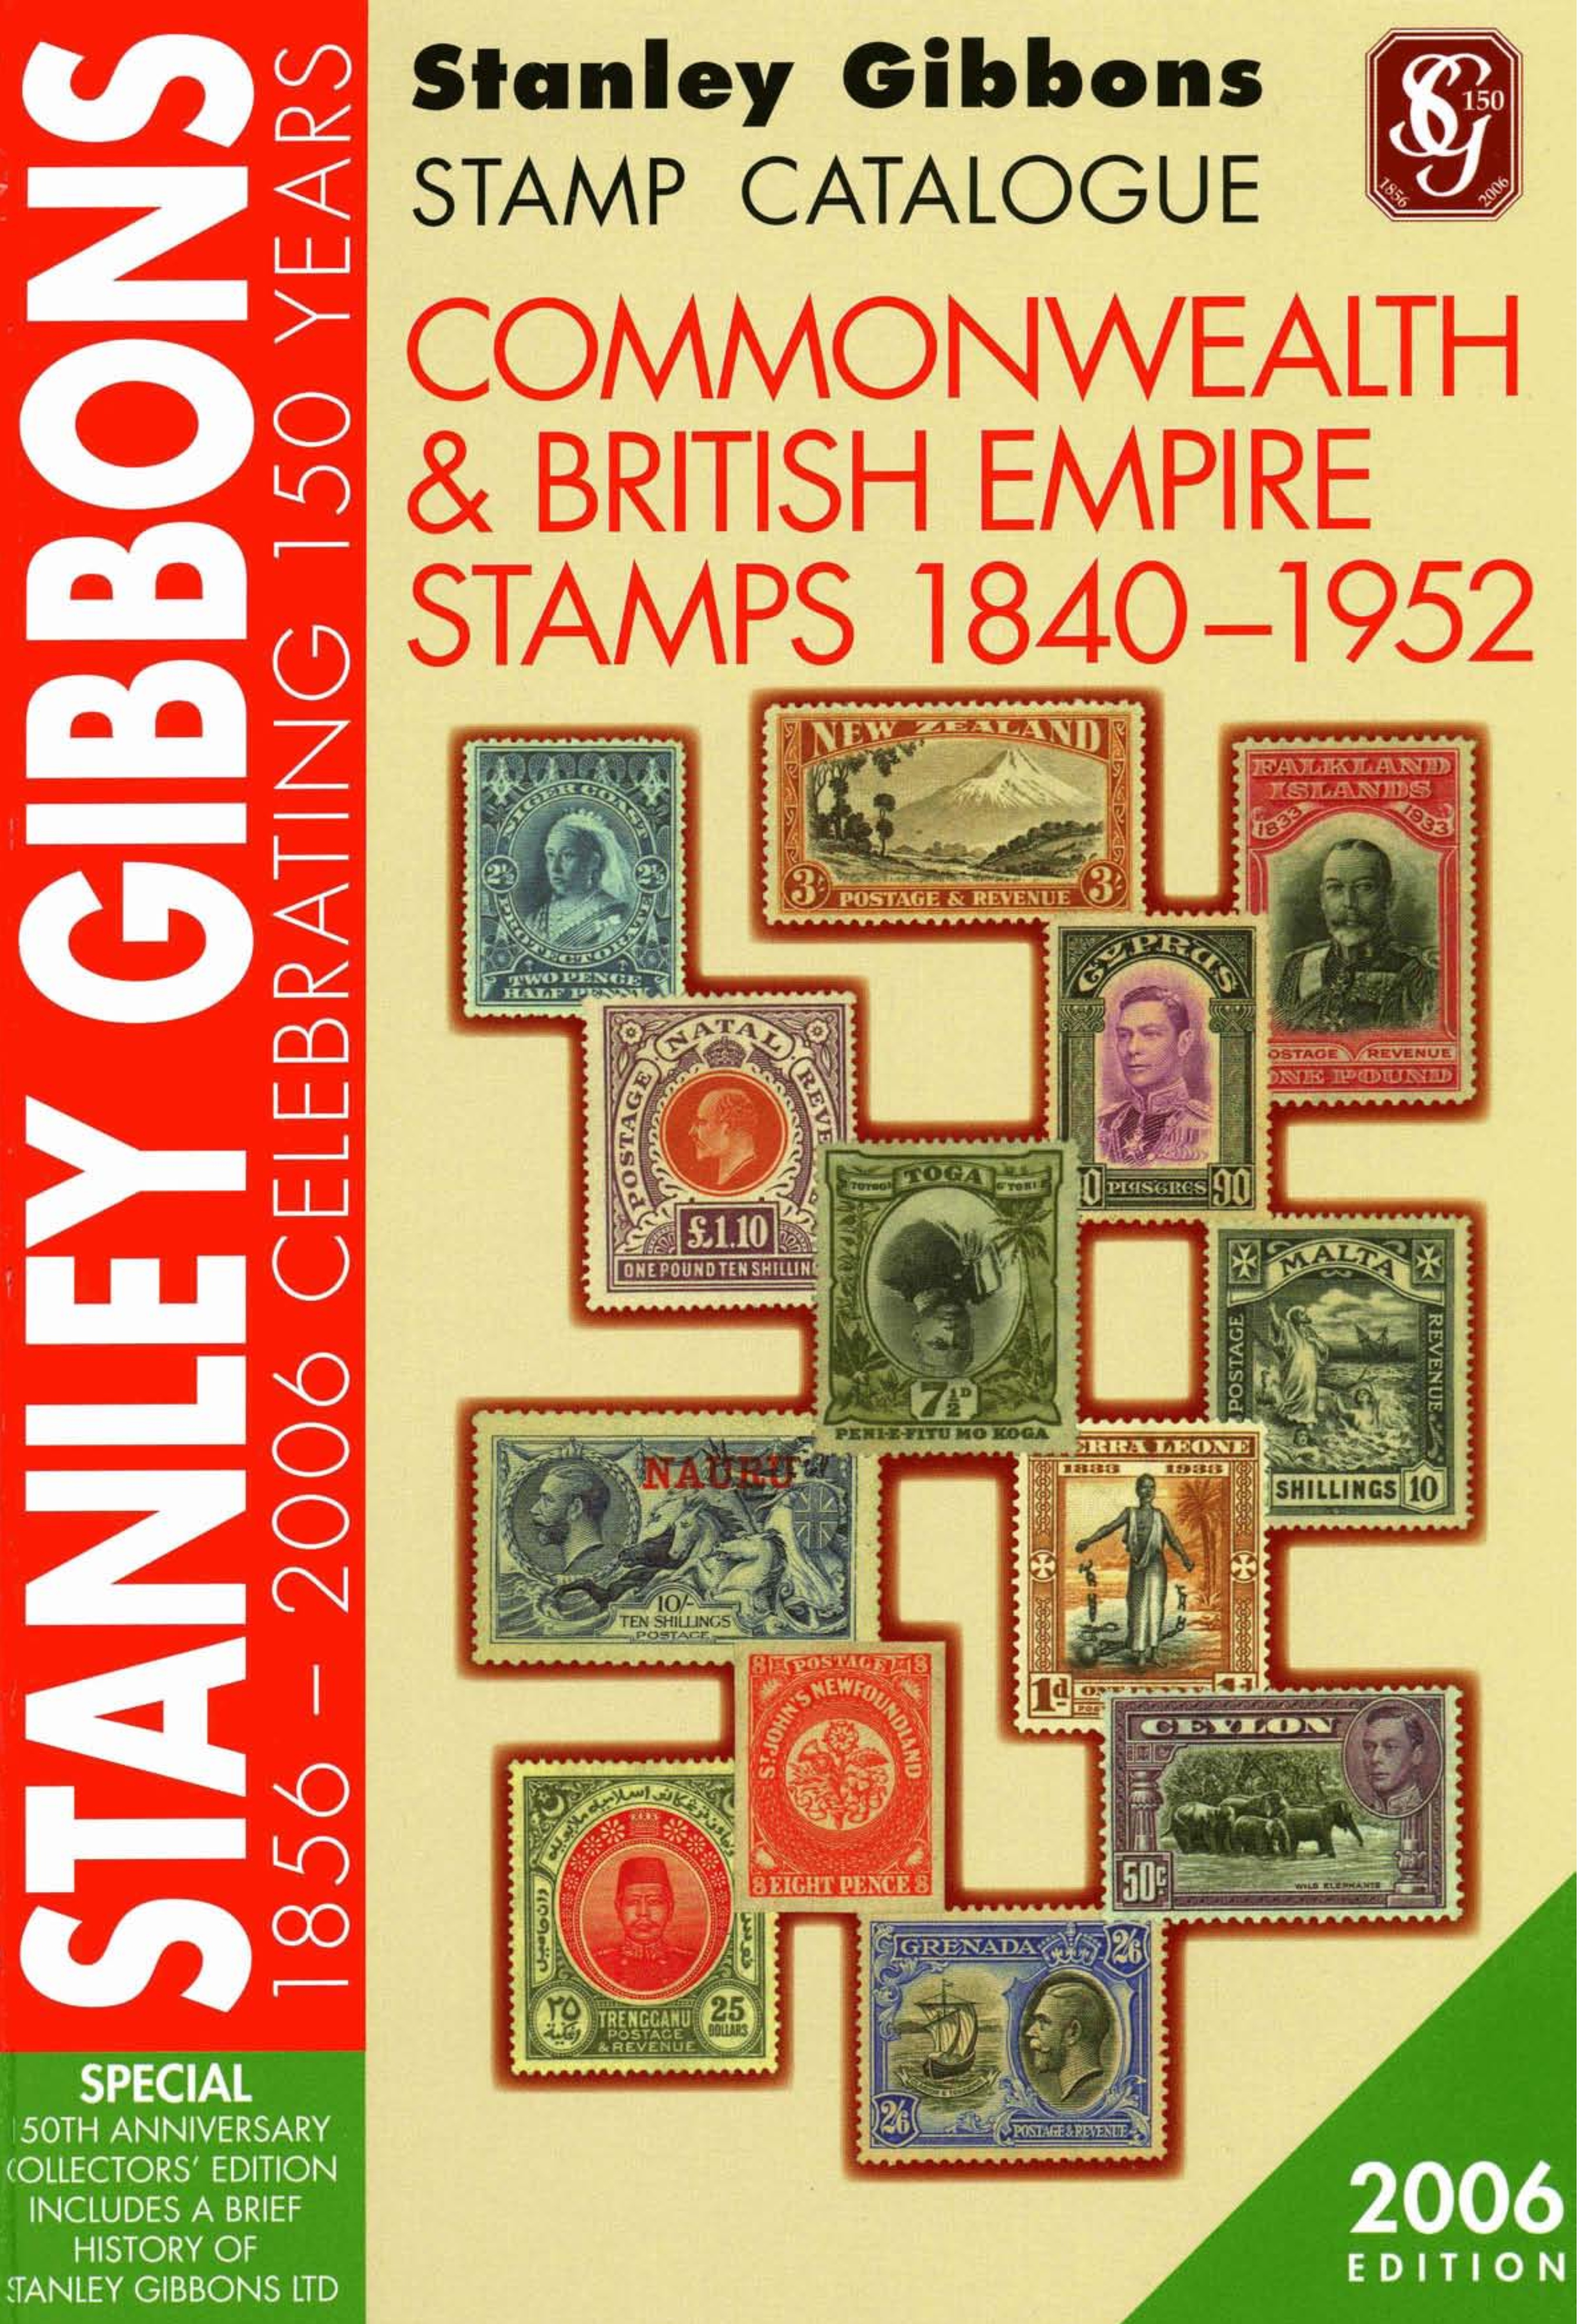 Stanley Gibbons Commonwealth Catalogue (1940-1952), 2006 edition